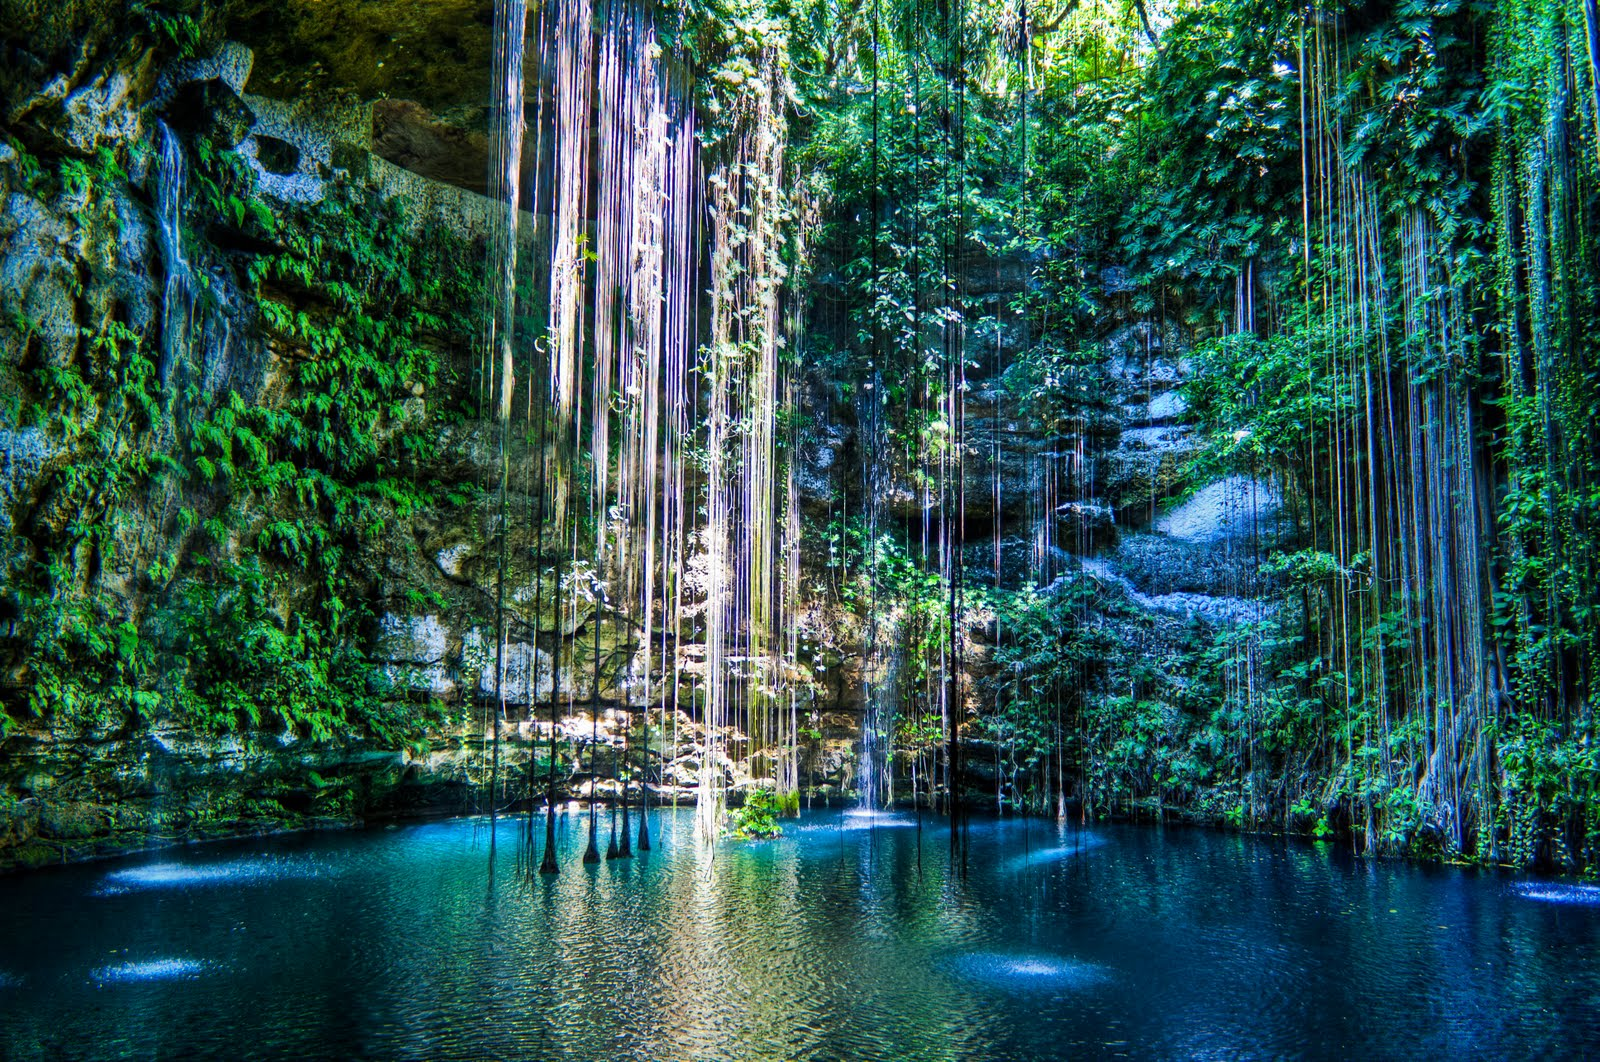 Cenote Ik Kil in the Yucatán Peninsula, Mexico